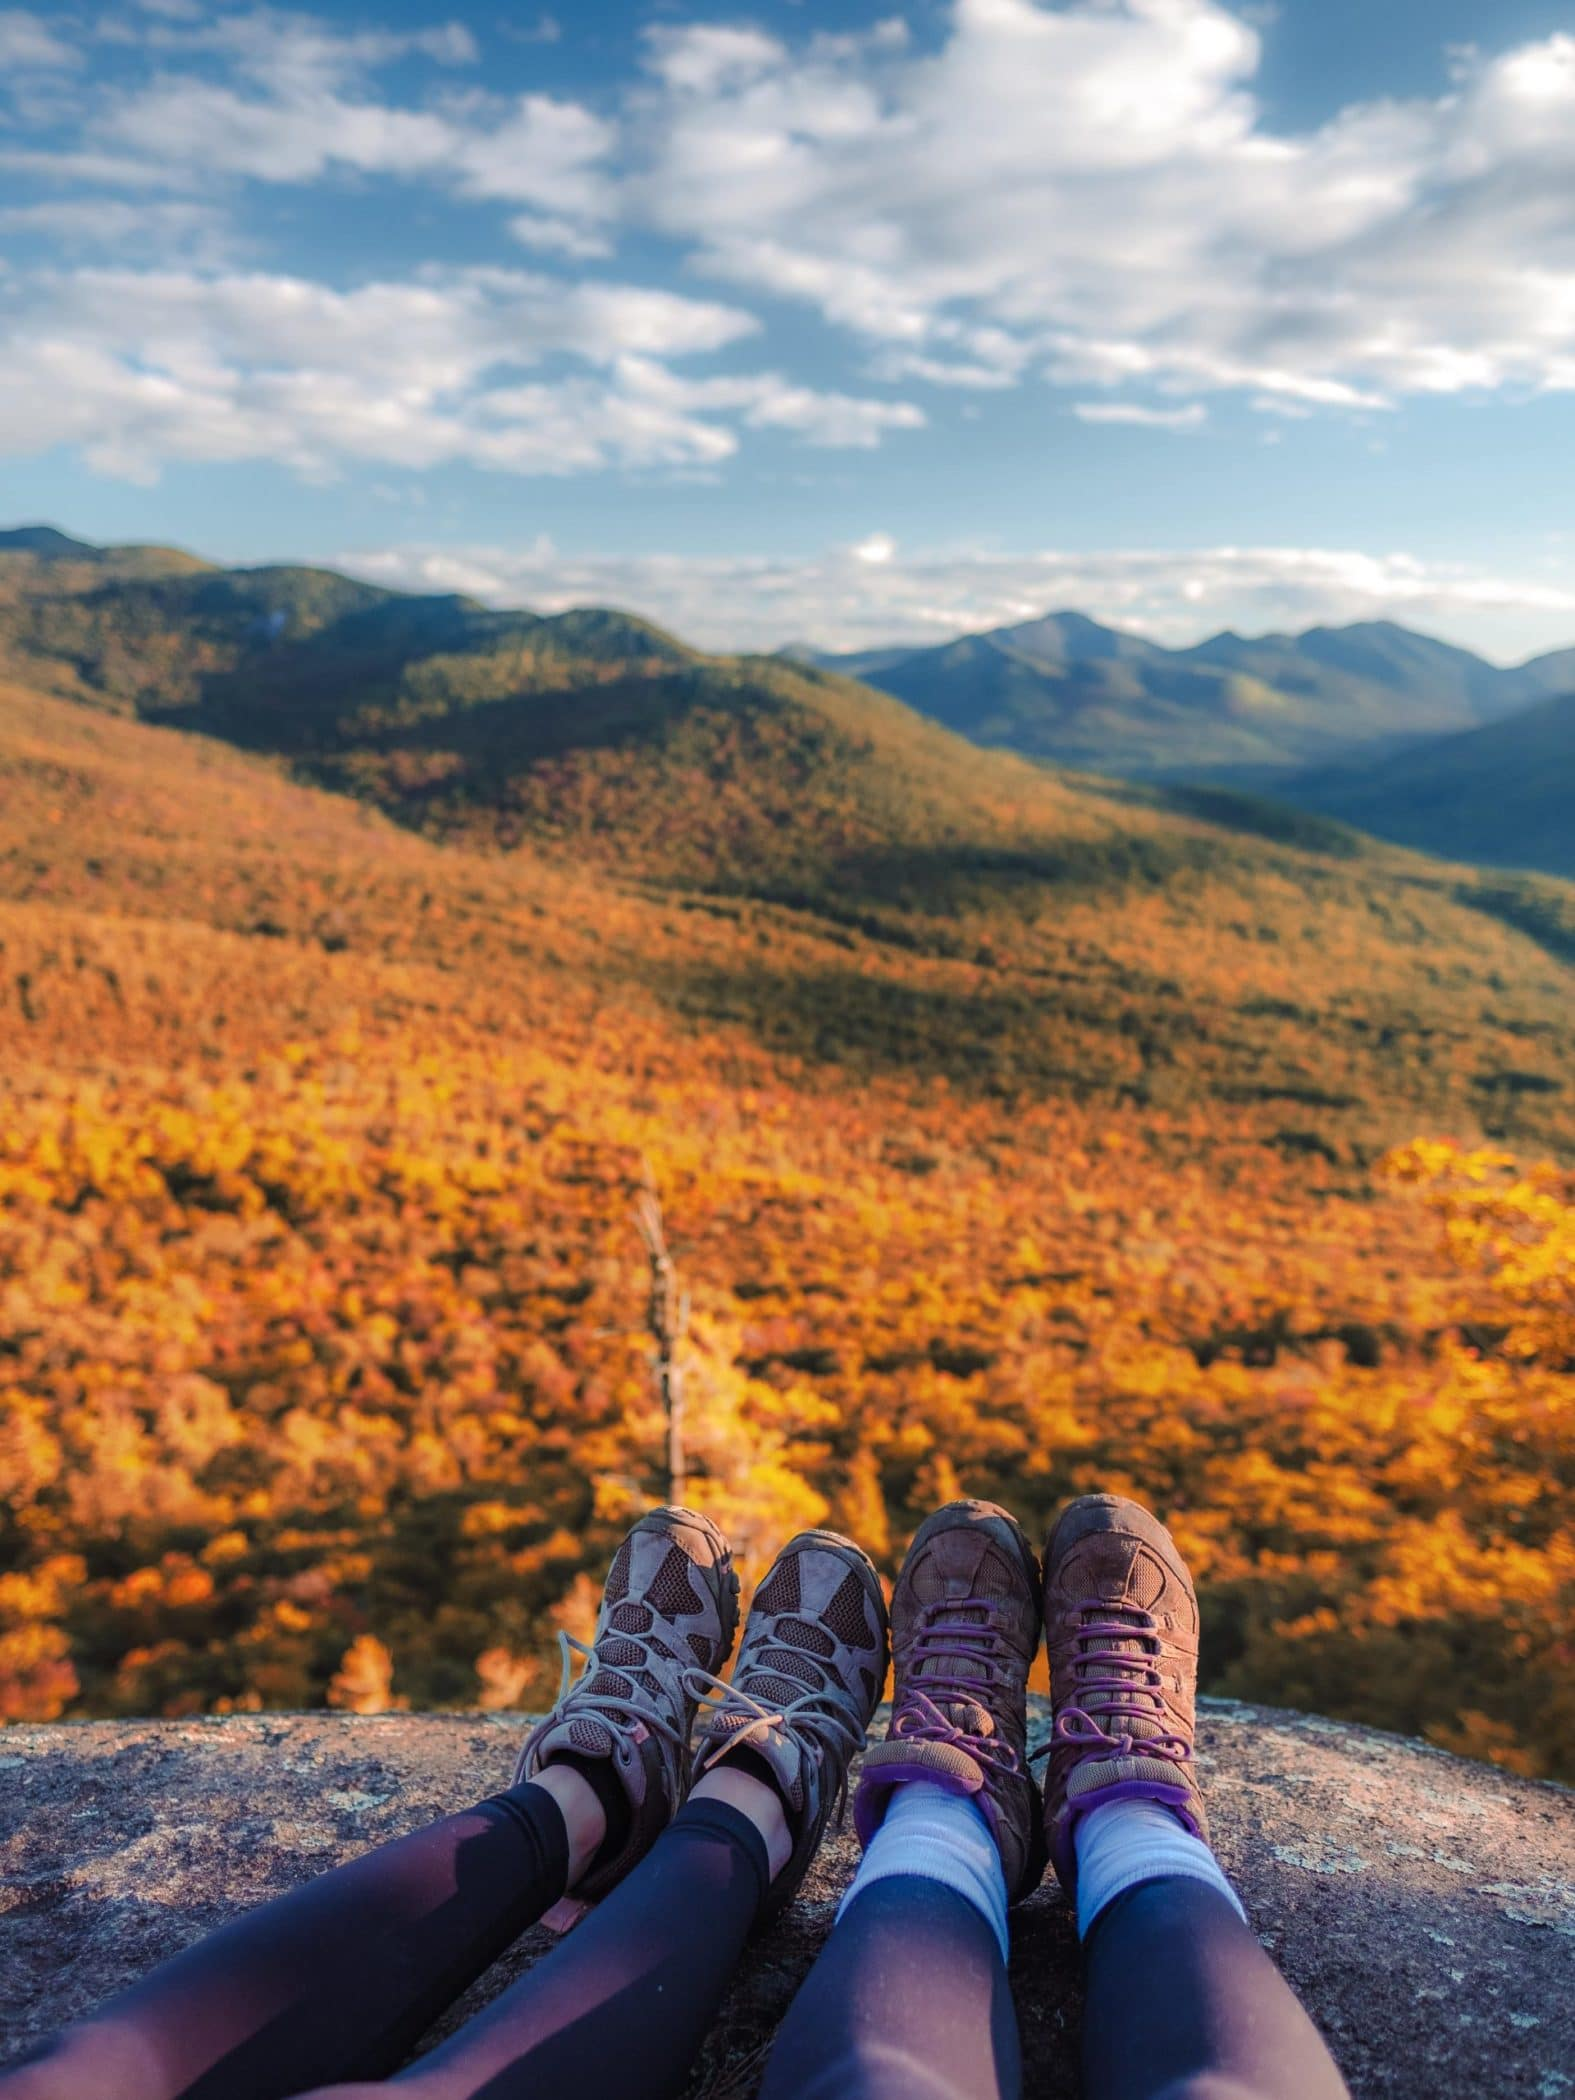 Short hikes with amazing views in the Adirondacks